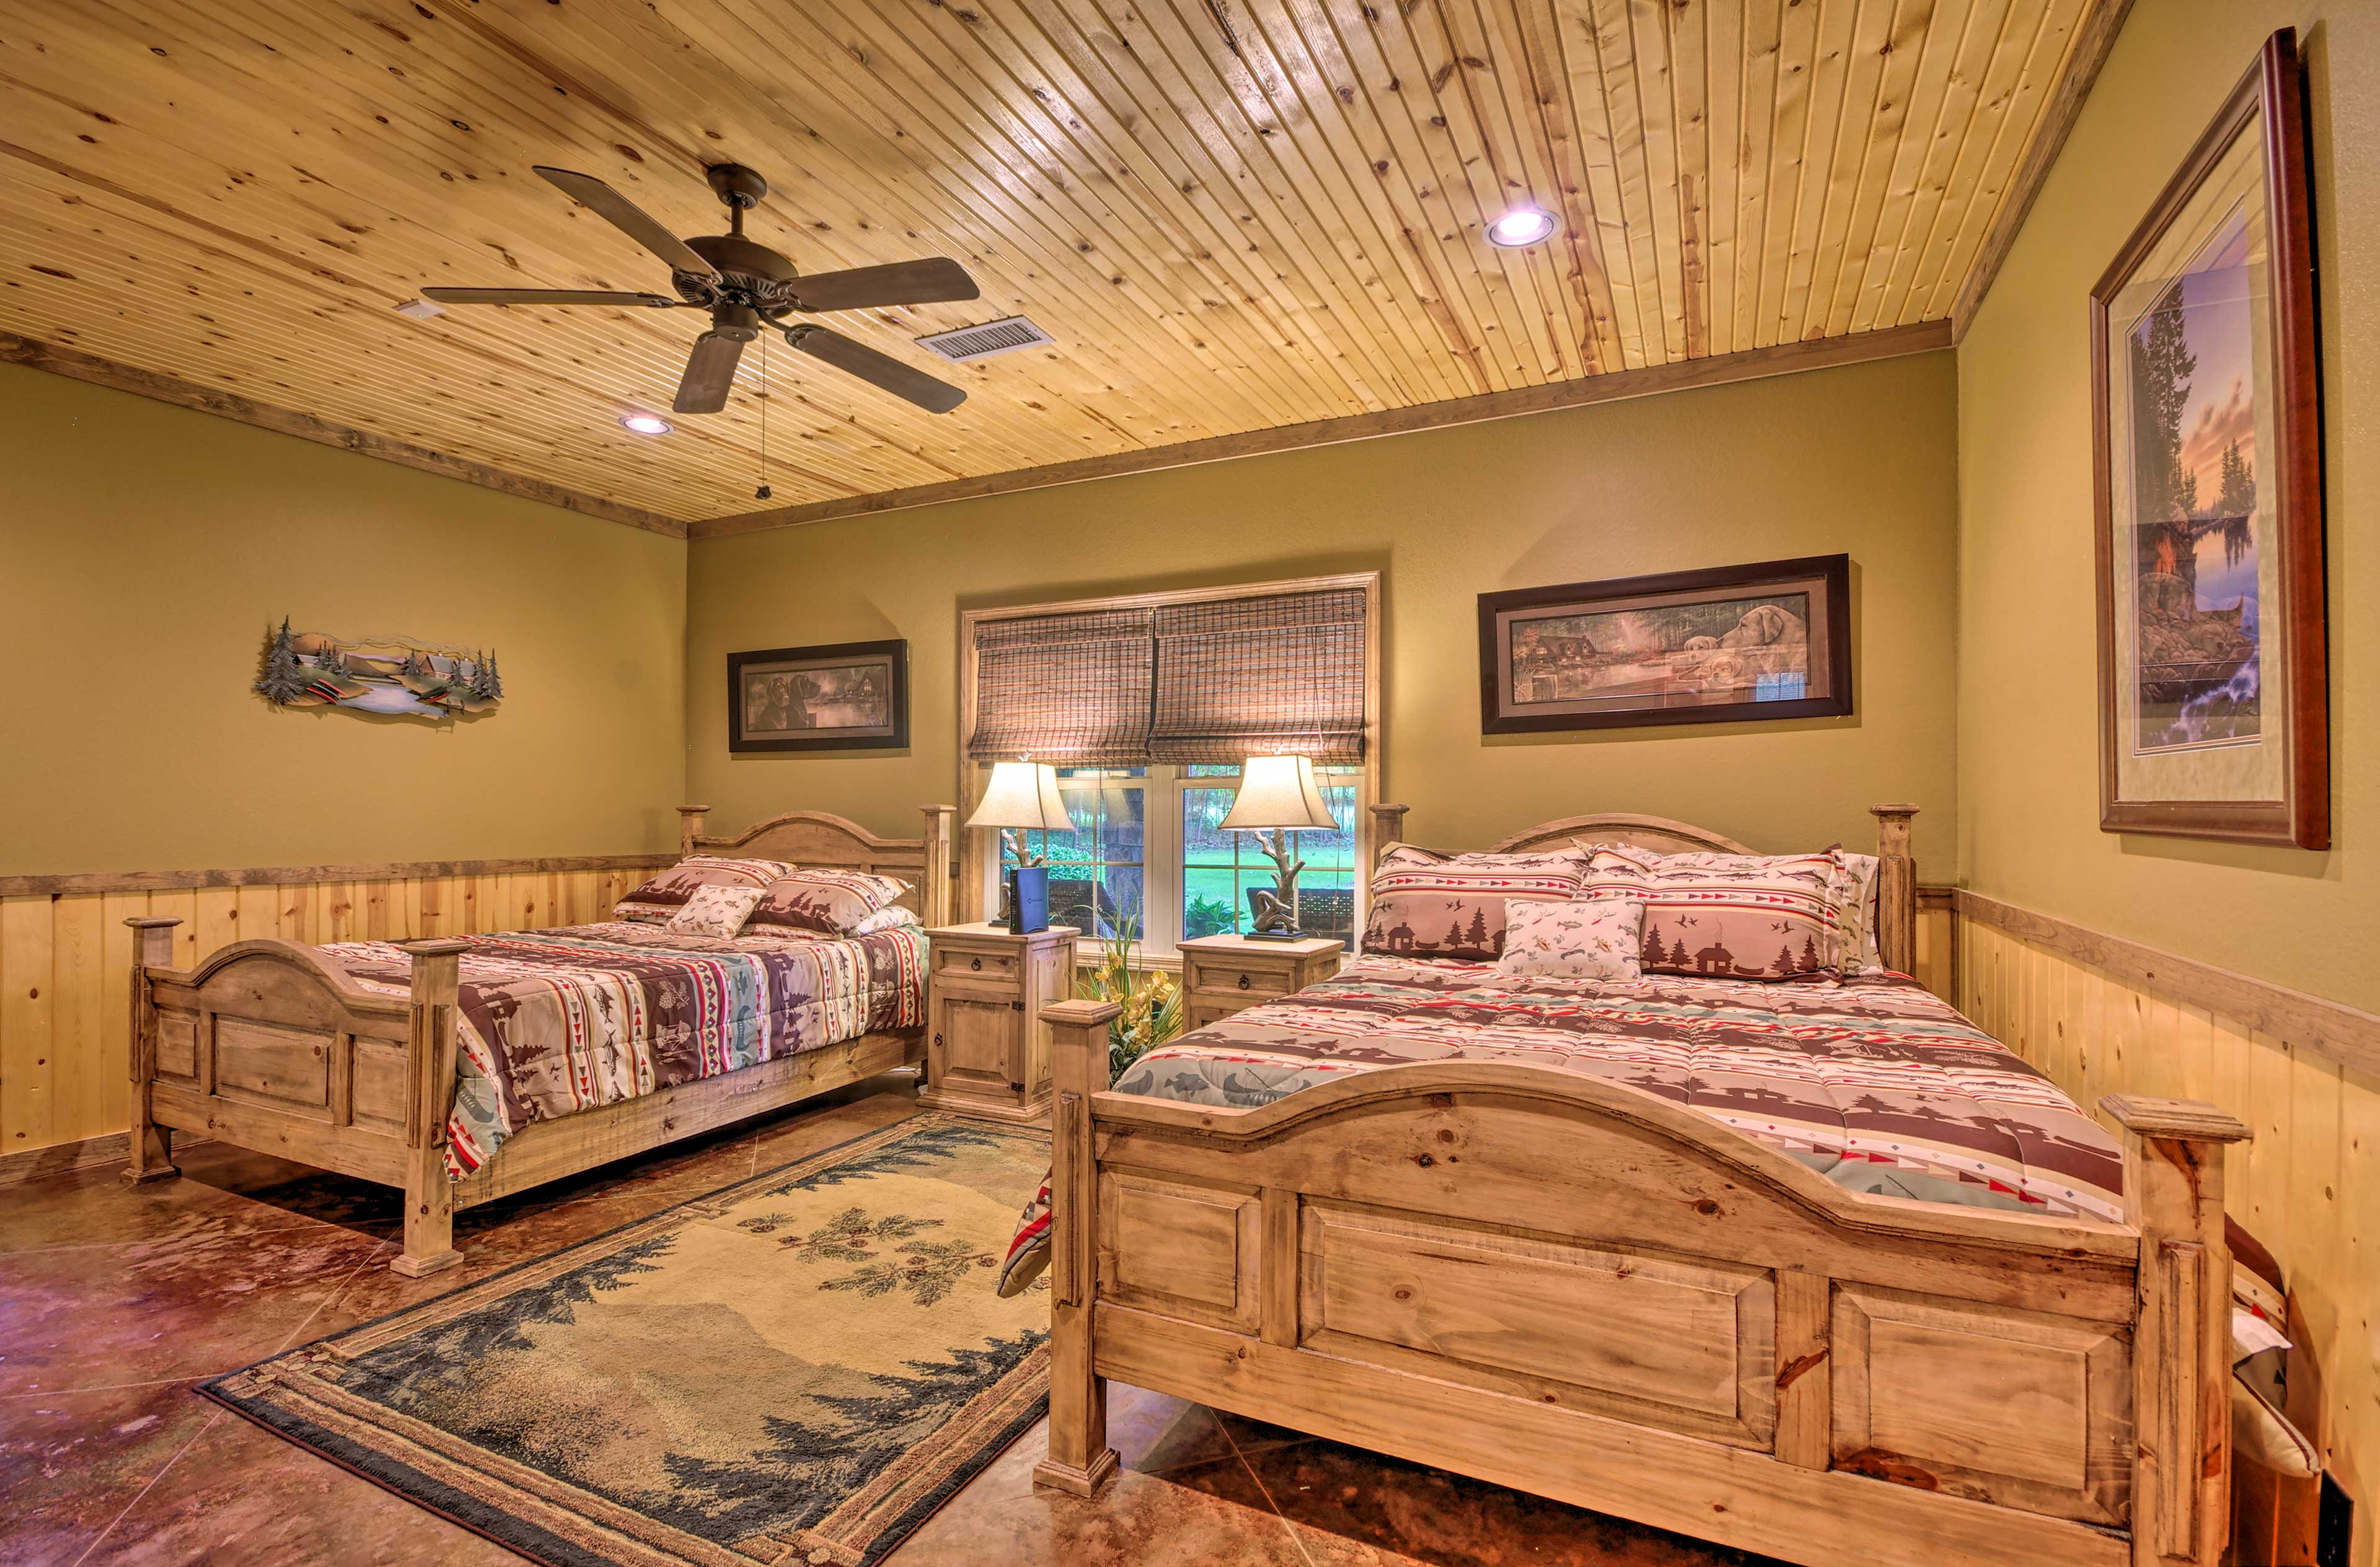 The master bedroom features 2 queen-sized beds.